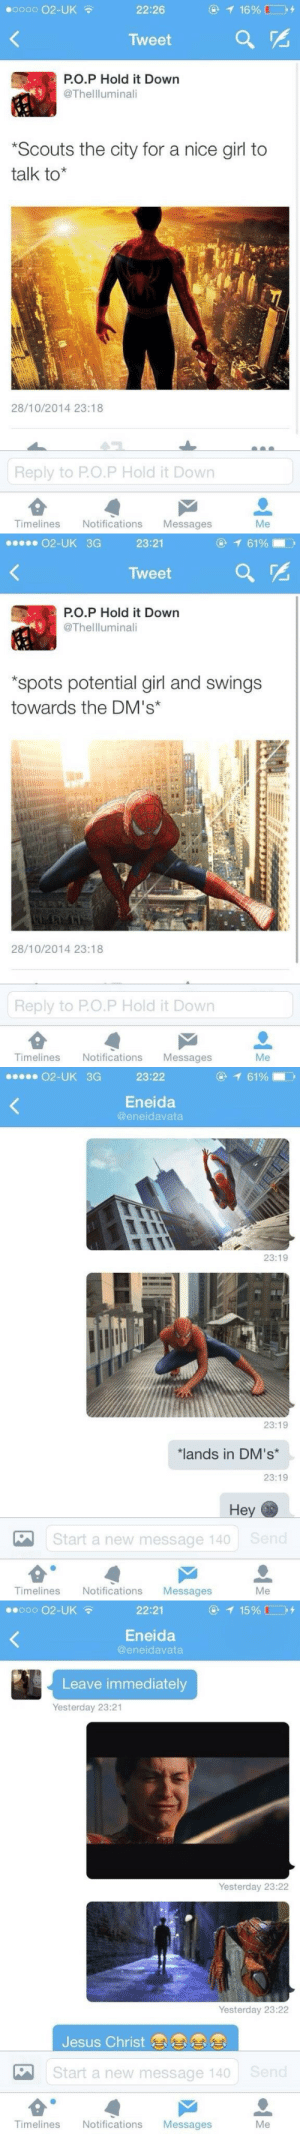 Jesus, Girl, and Nice: 00000 02-UK  22:26  Tweet  PO.P Hold it Down  @Thellluminali  Scouts the city for a nice girl to  talk to*  28/10/2014 23:18  Reply to P.O.P Hold it Down  Timelines Notifications Messages  Me   02-UK 3G  23:21  @ 61%. ,  Tweet  PO.P Hold it Down  @Thellluminali  spots potential girl and swings  towards the DM's  28/10/2014 23:18  Reply to P.O.P Hold it Down  Timelines NotificationsMessages  Me   02-UK  3G  23:22  ④  61%!  Eneida  @eneidavata  23:19  23:19  ands in DM's*  23:19  Start a new message 140 Send  Timelines NotificationsMessages  Me   0oo O2-UK  22:21  Eneida  @eneidavata  Leave immediately  Yesterday 23:21  Yesterday 23:22  Yesterday 23:22  Jesus Christ  Start a new message 140 Send  Timelines Notifications Messages  Me